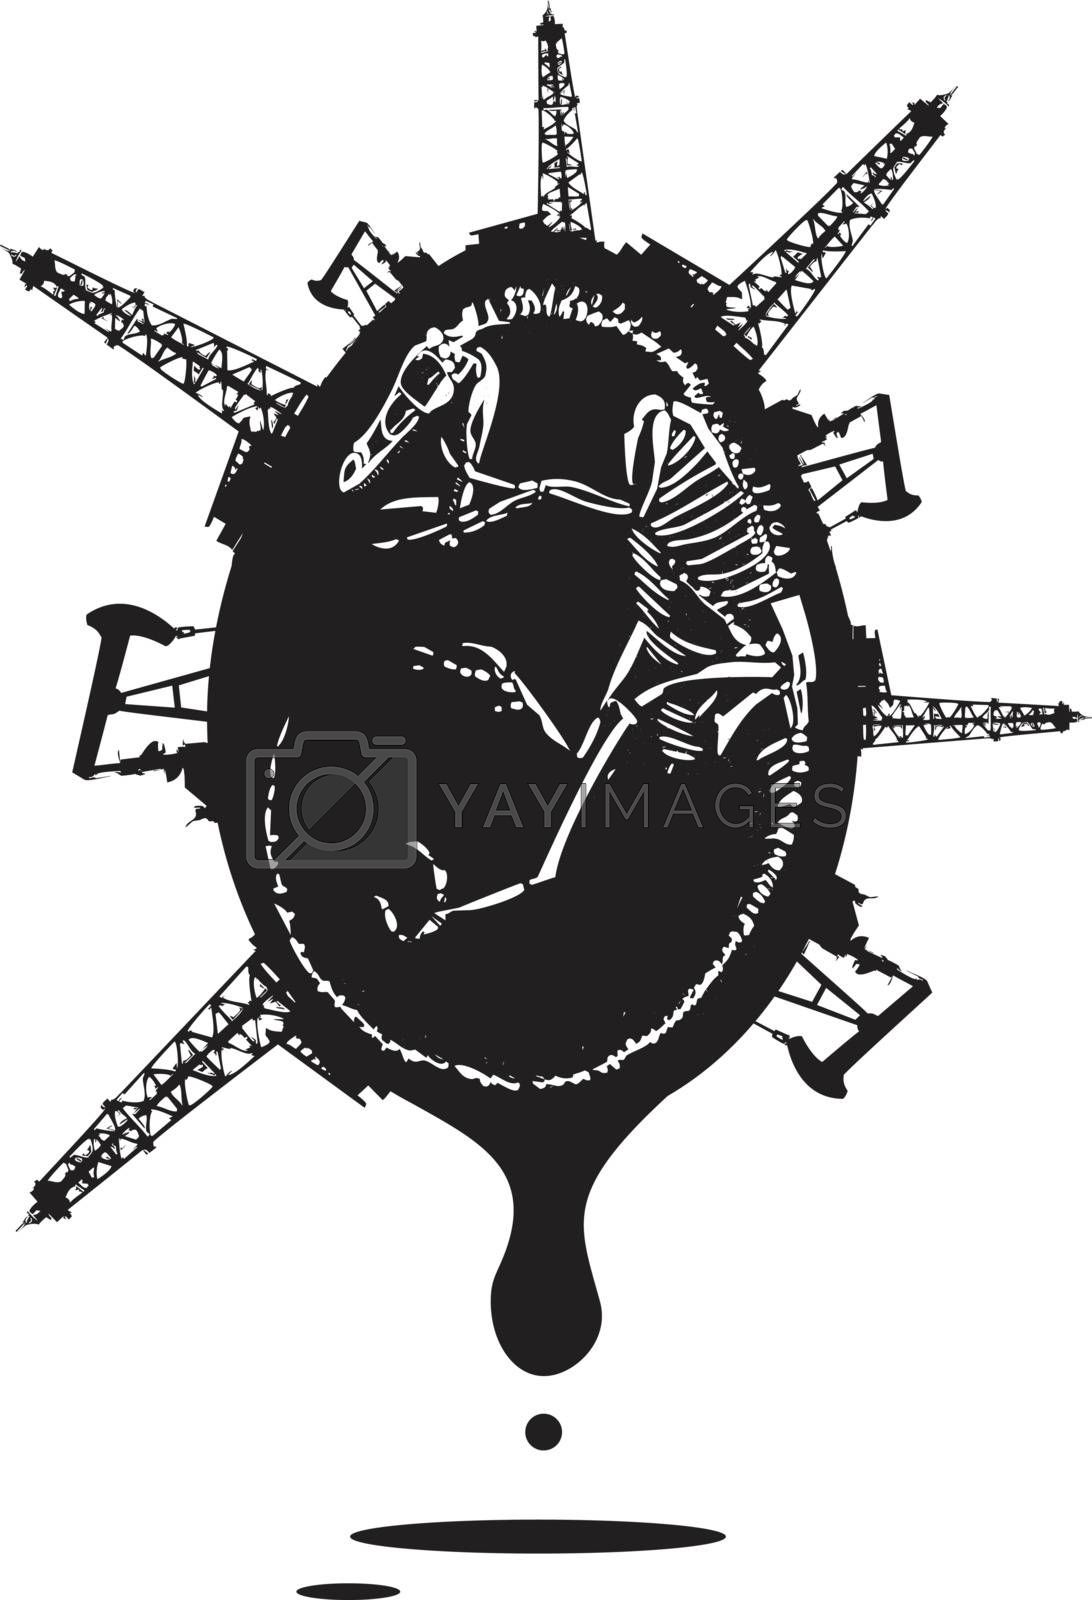 Woodcut style image of a fossil of a dinosaur skeleton with and oil rigs.